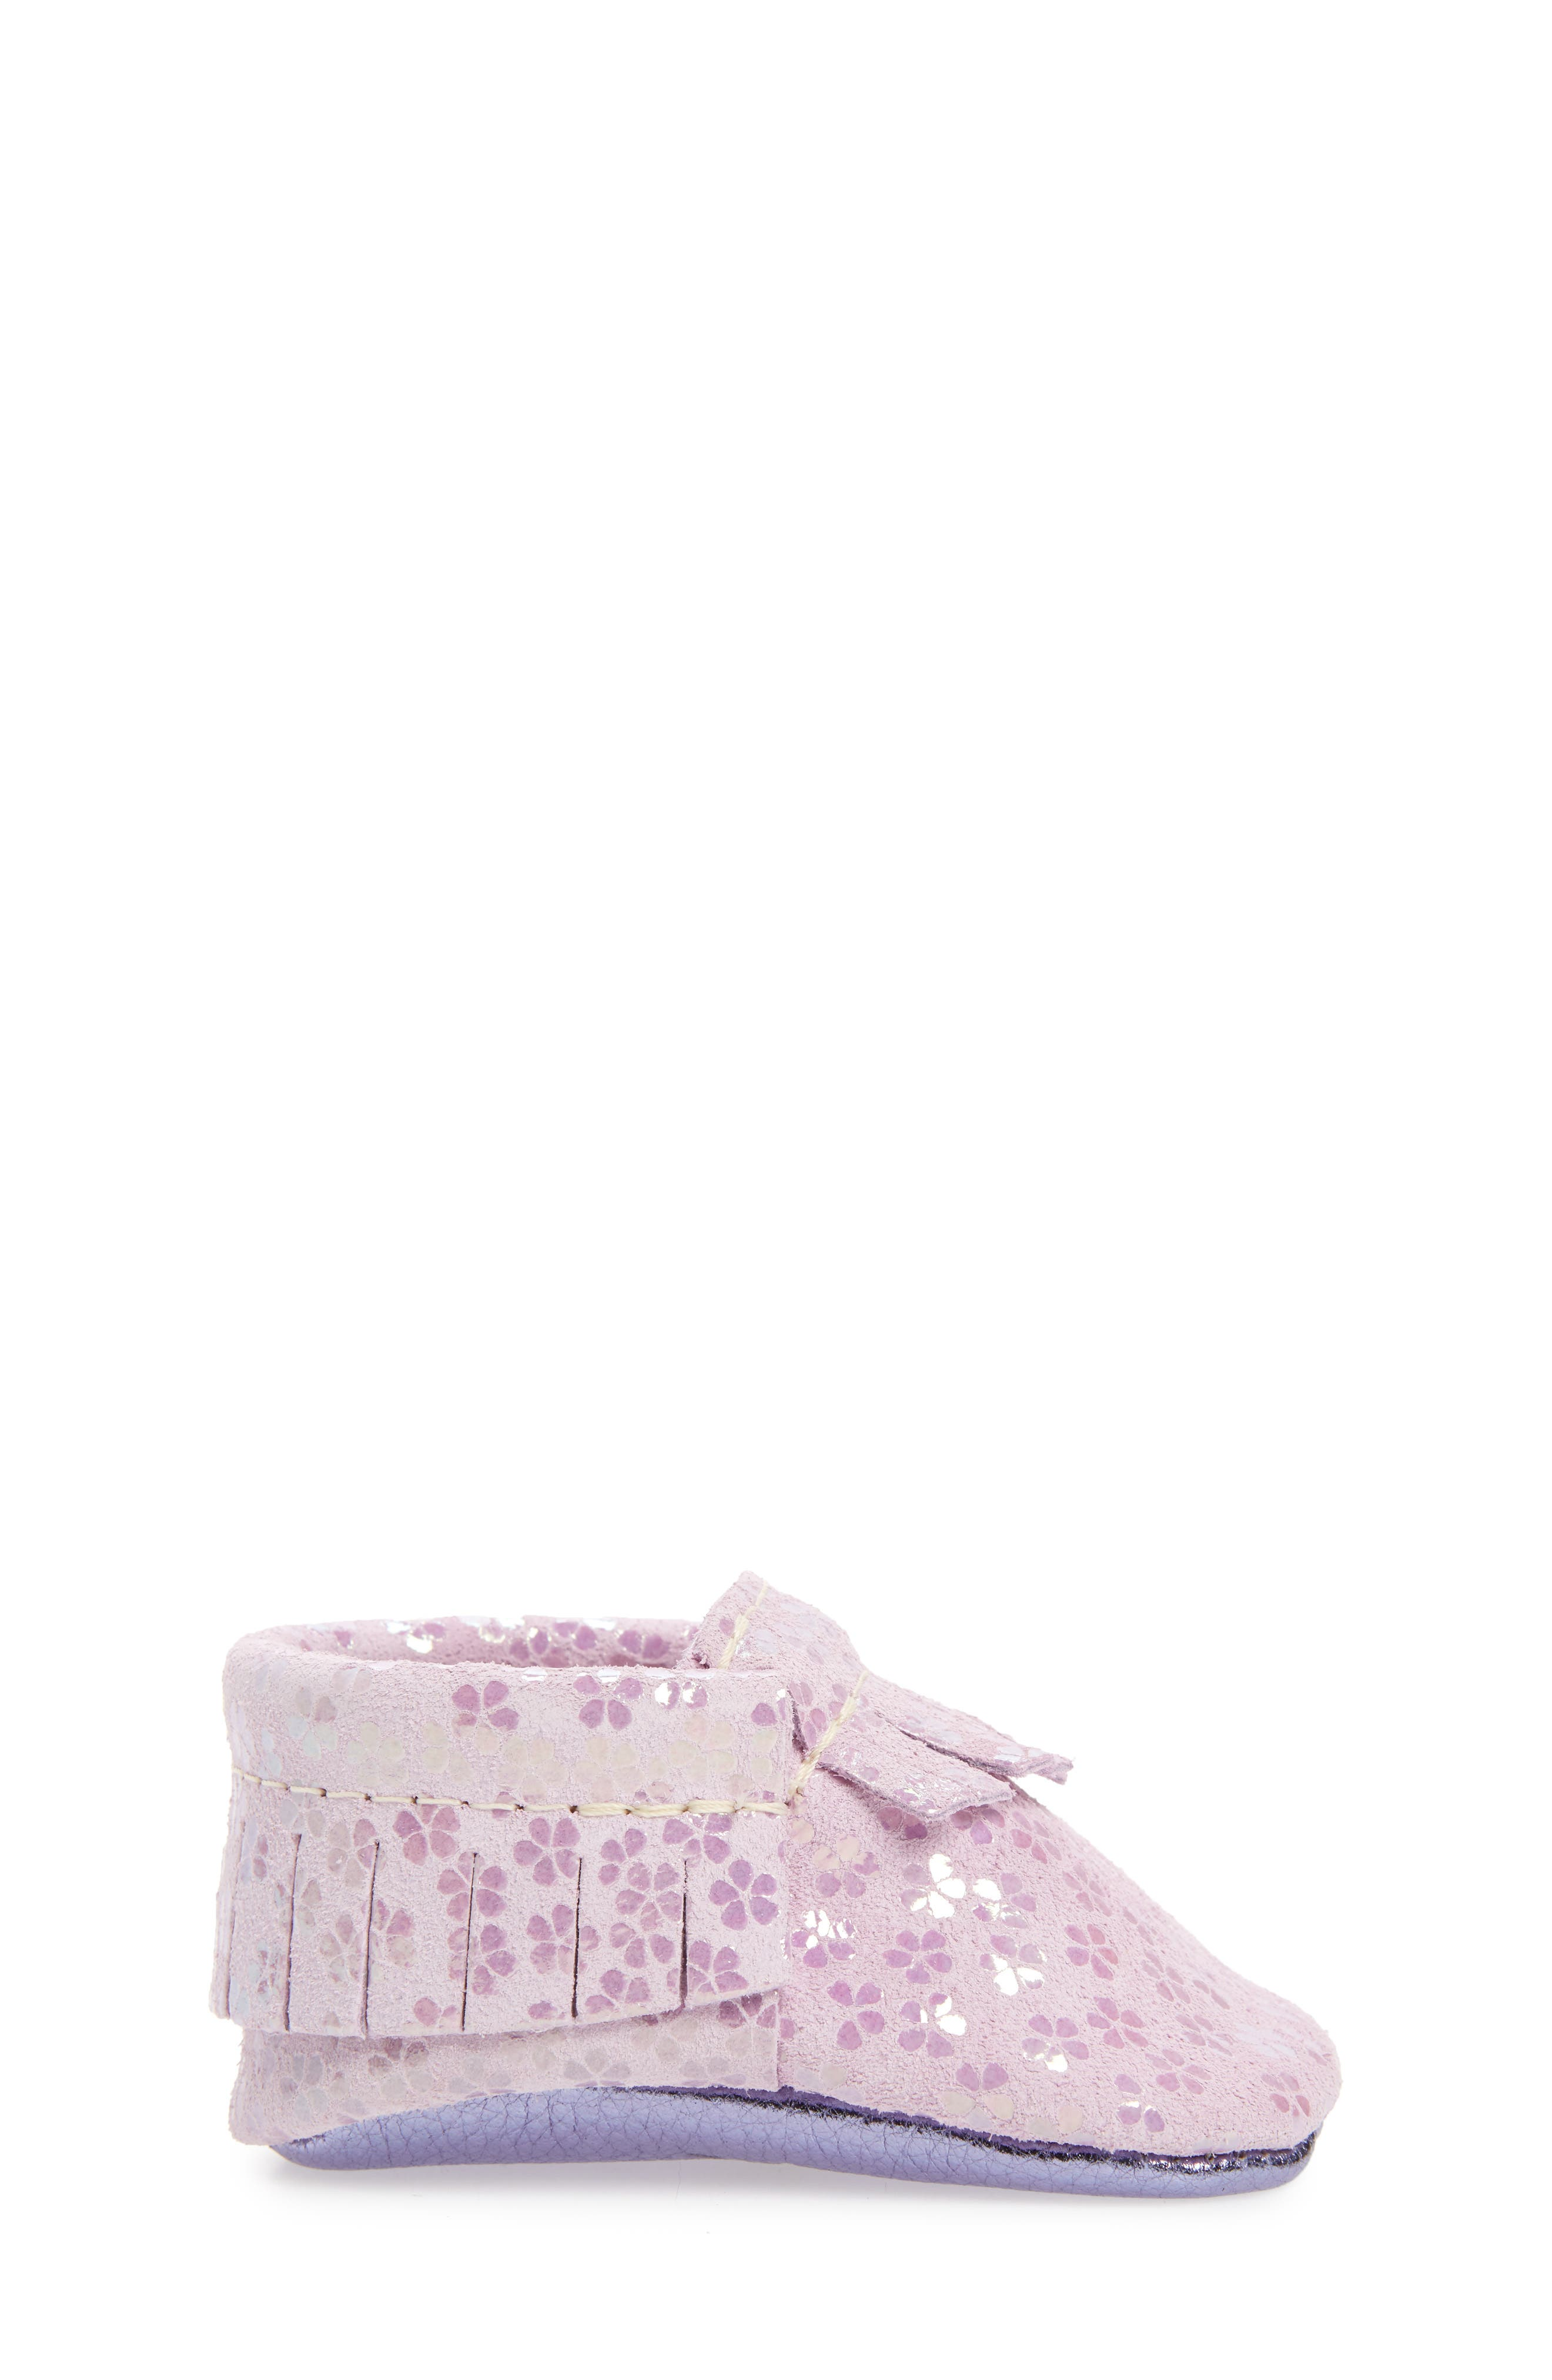 Lilac Blossom Moccasin,                             Alternate thumbnail 3, color,                             508